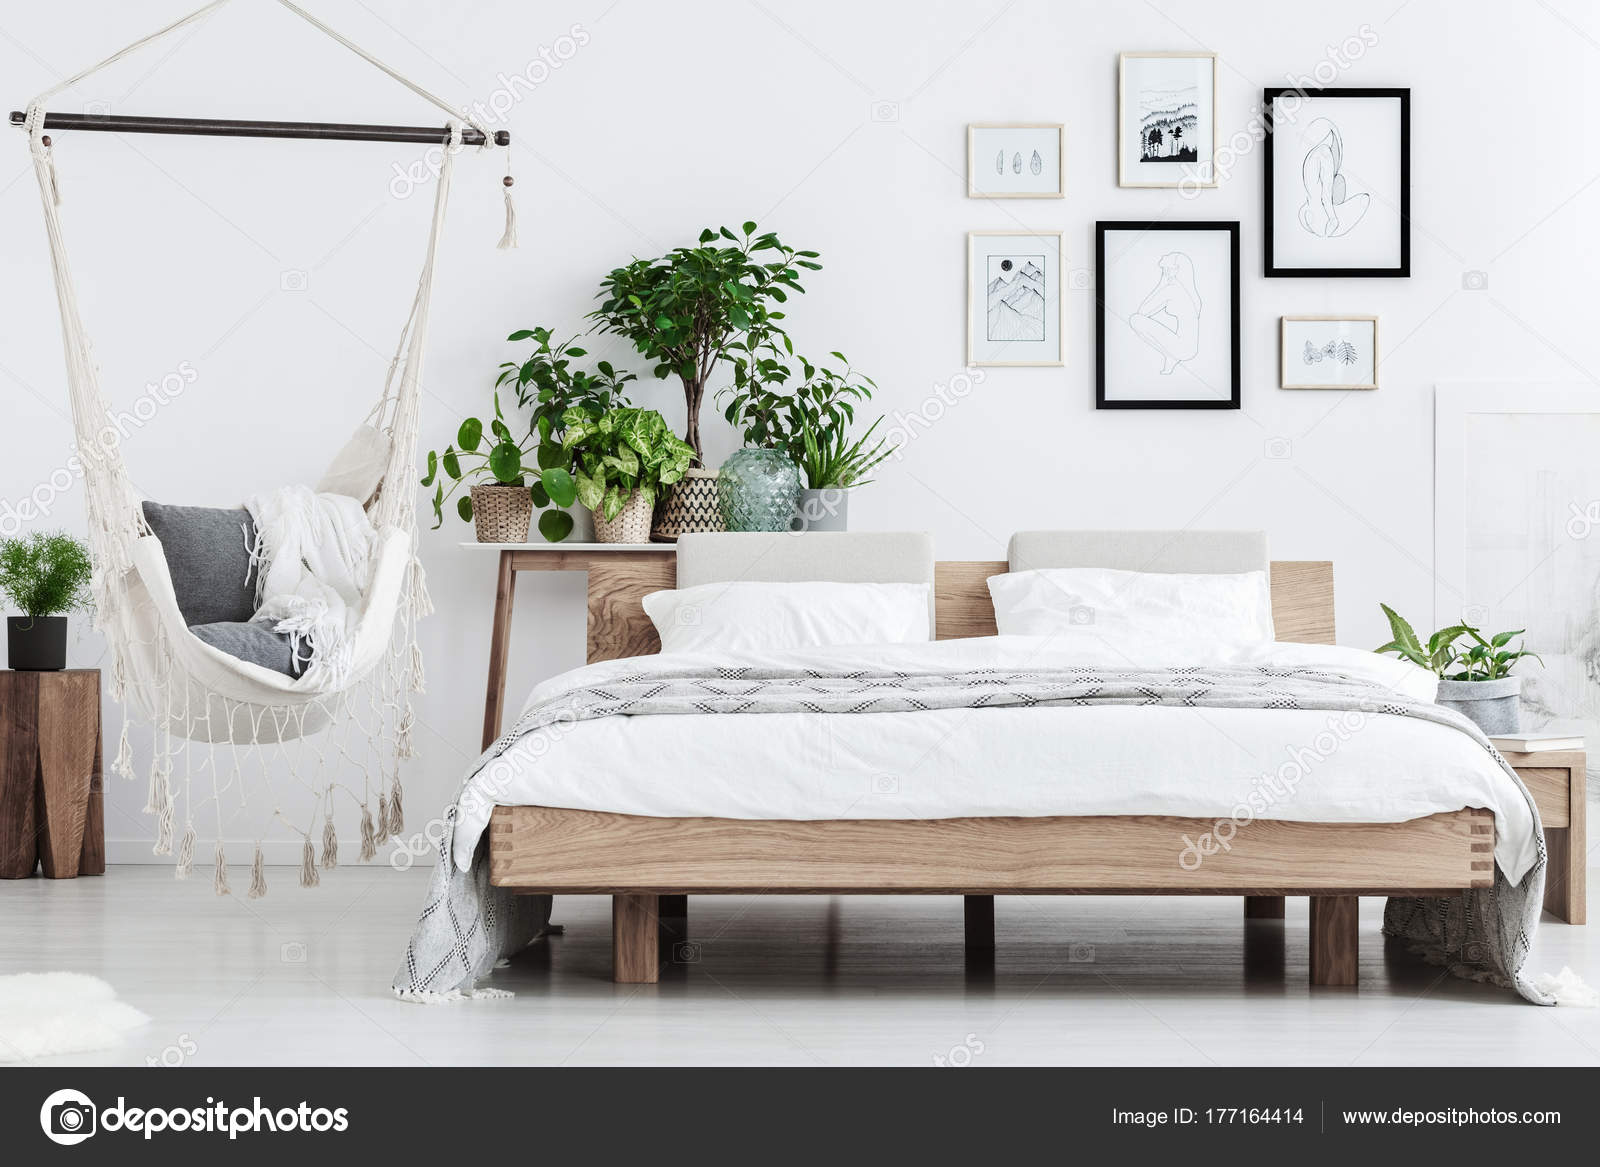 Pflanzen Vor Schlafzimmer Natural Bedroom Interior With Plants — Stock Photo